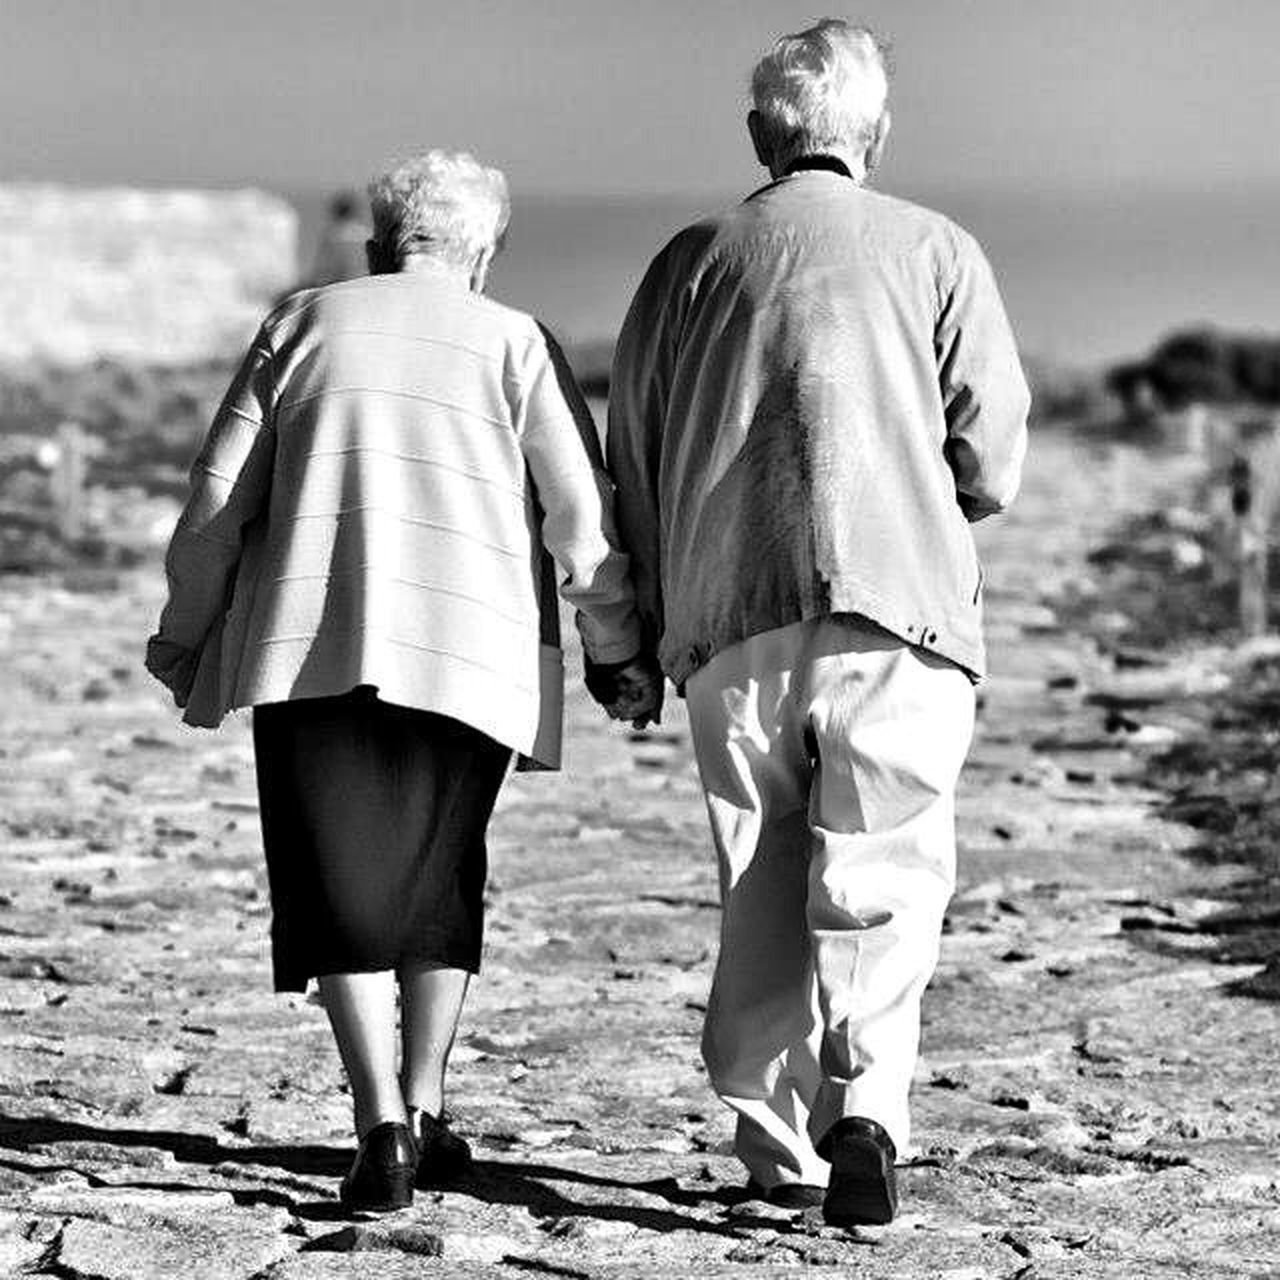 senior adult, rear view, senior women, senior men, senior couple, walking, two people, full length, heterosexual couple, togetherness, women, casual clothing, men, retirement, couple - relationship, beach, wife, day, adult, adults only, outdoors, human back, people, back